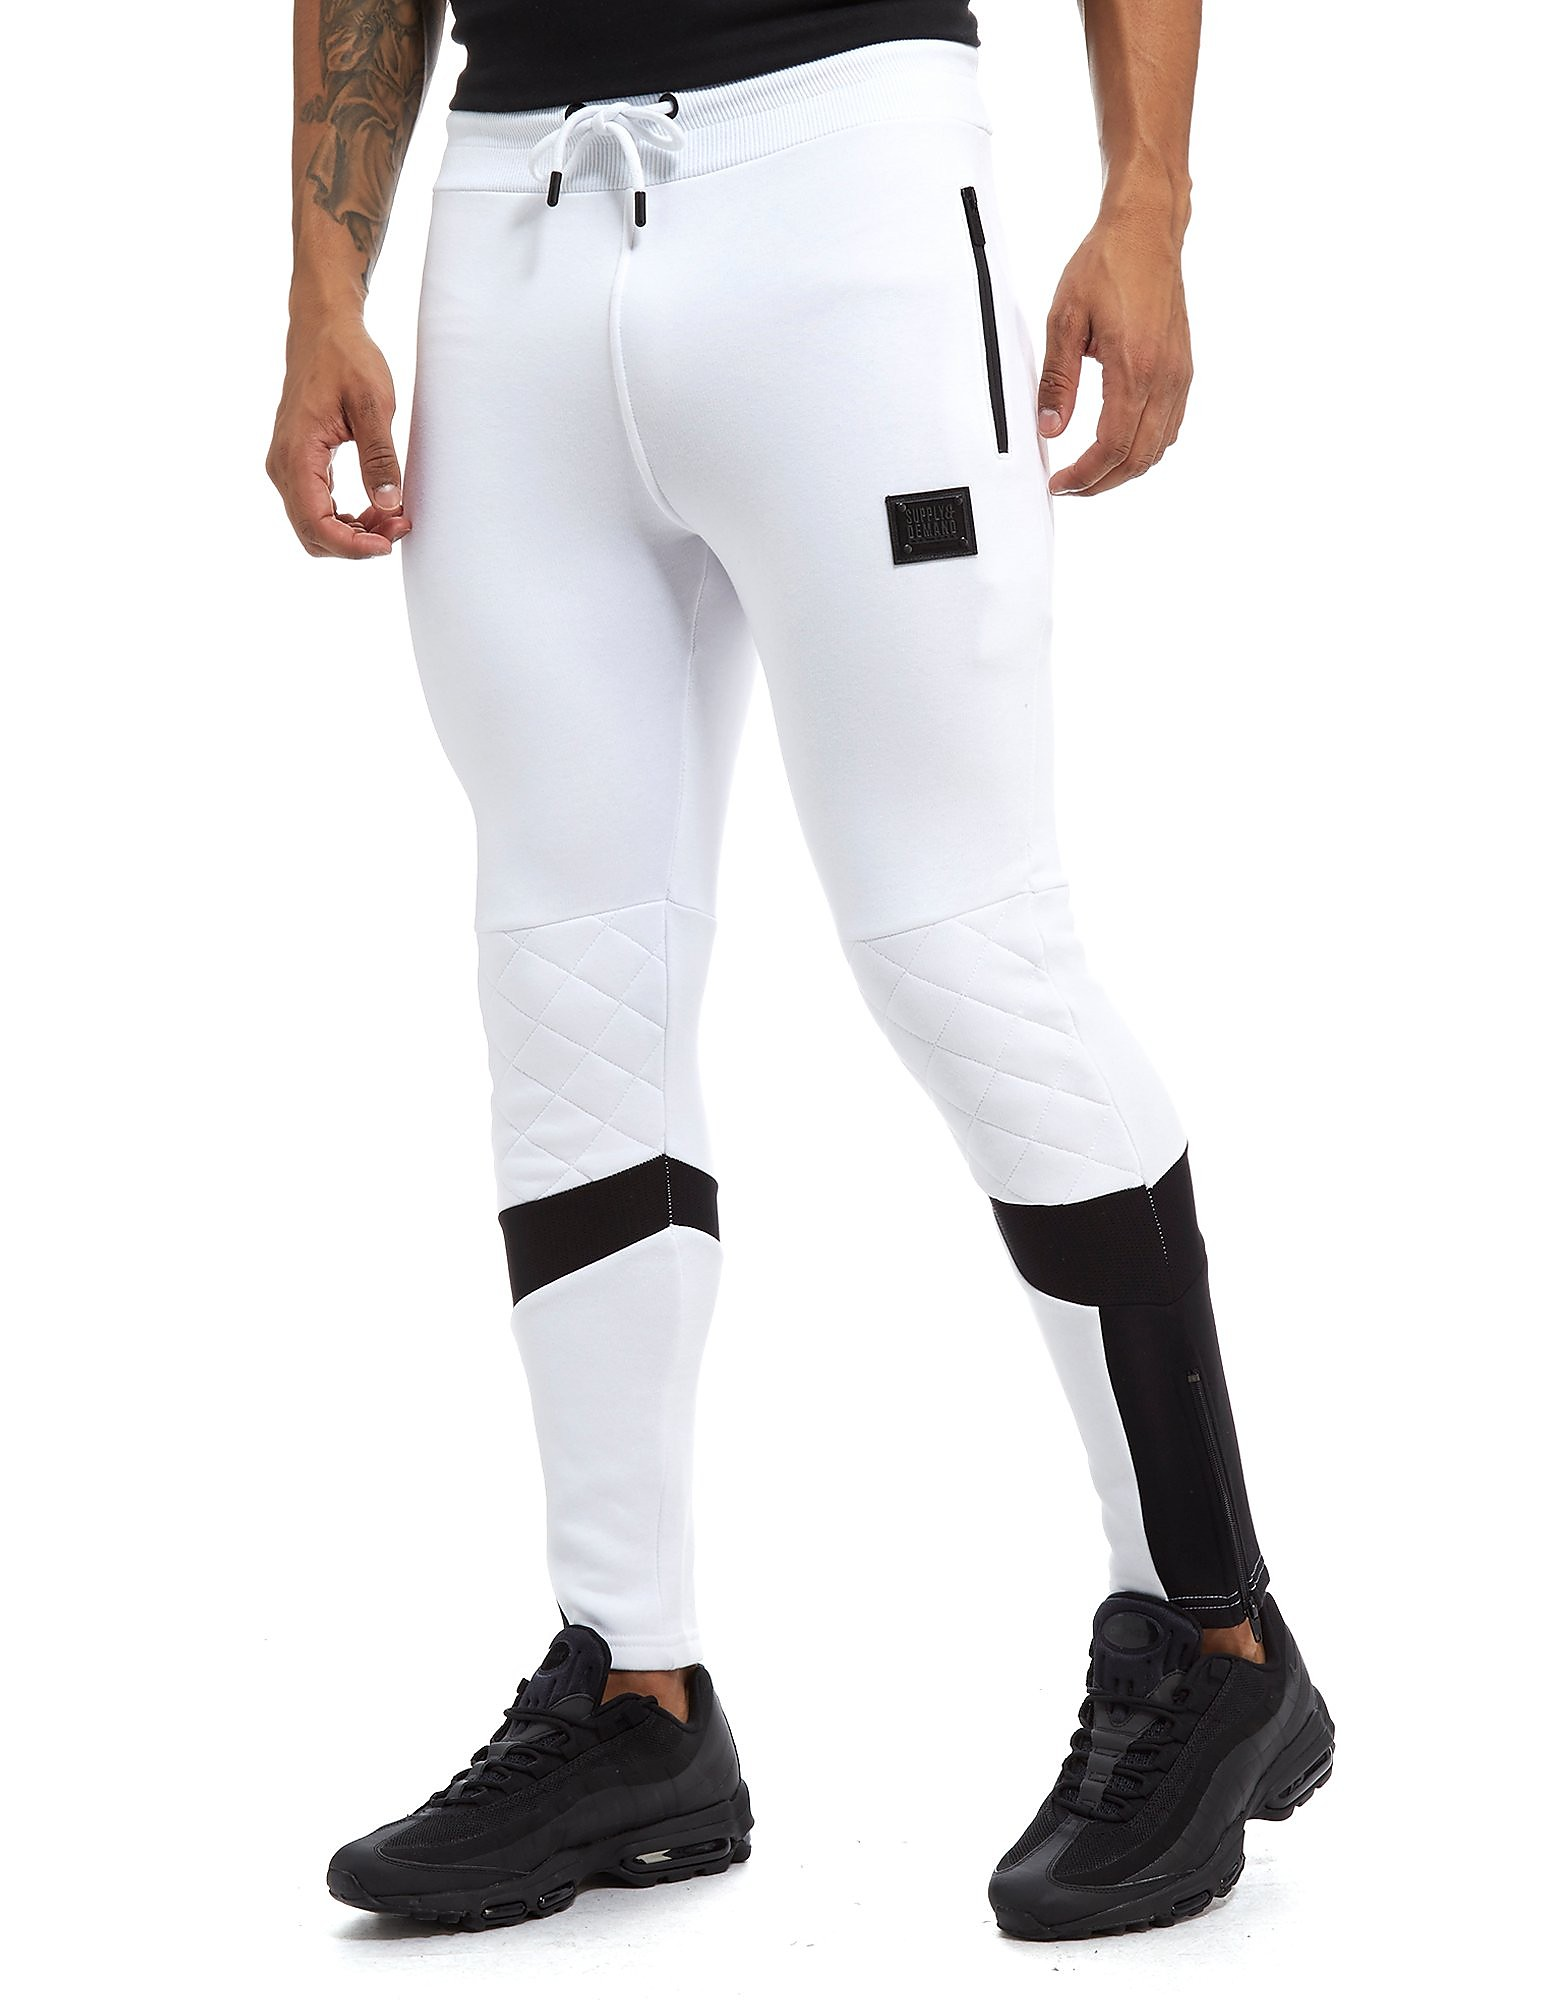 Supply & Demand Astro Joggers - Only at JD, White